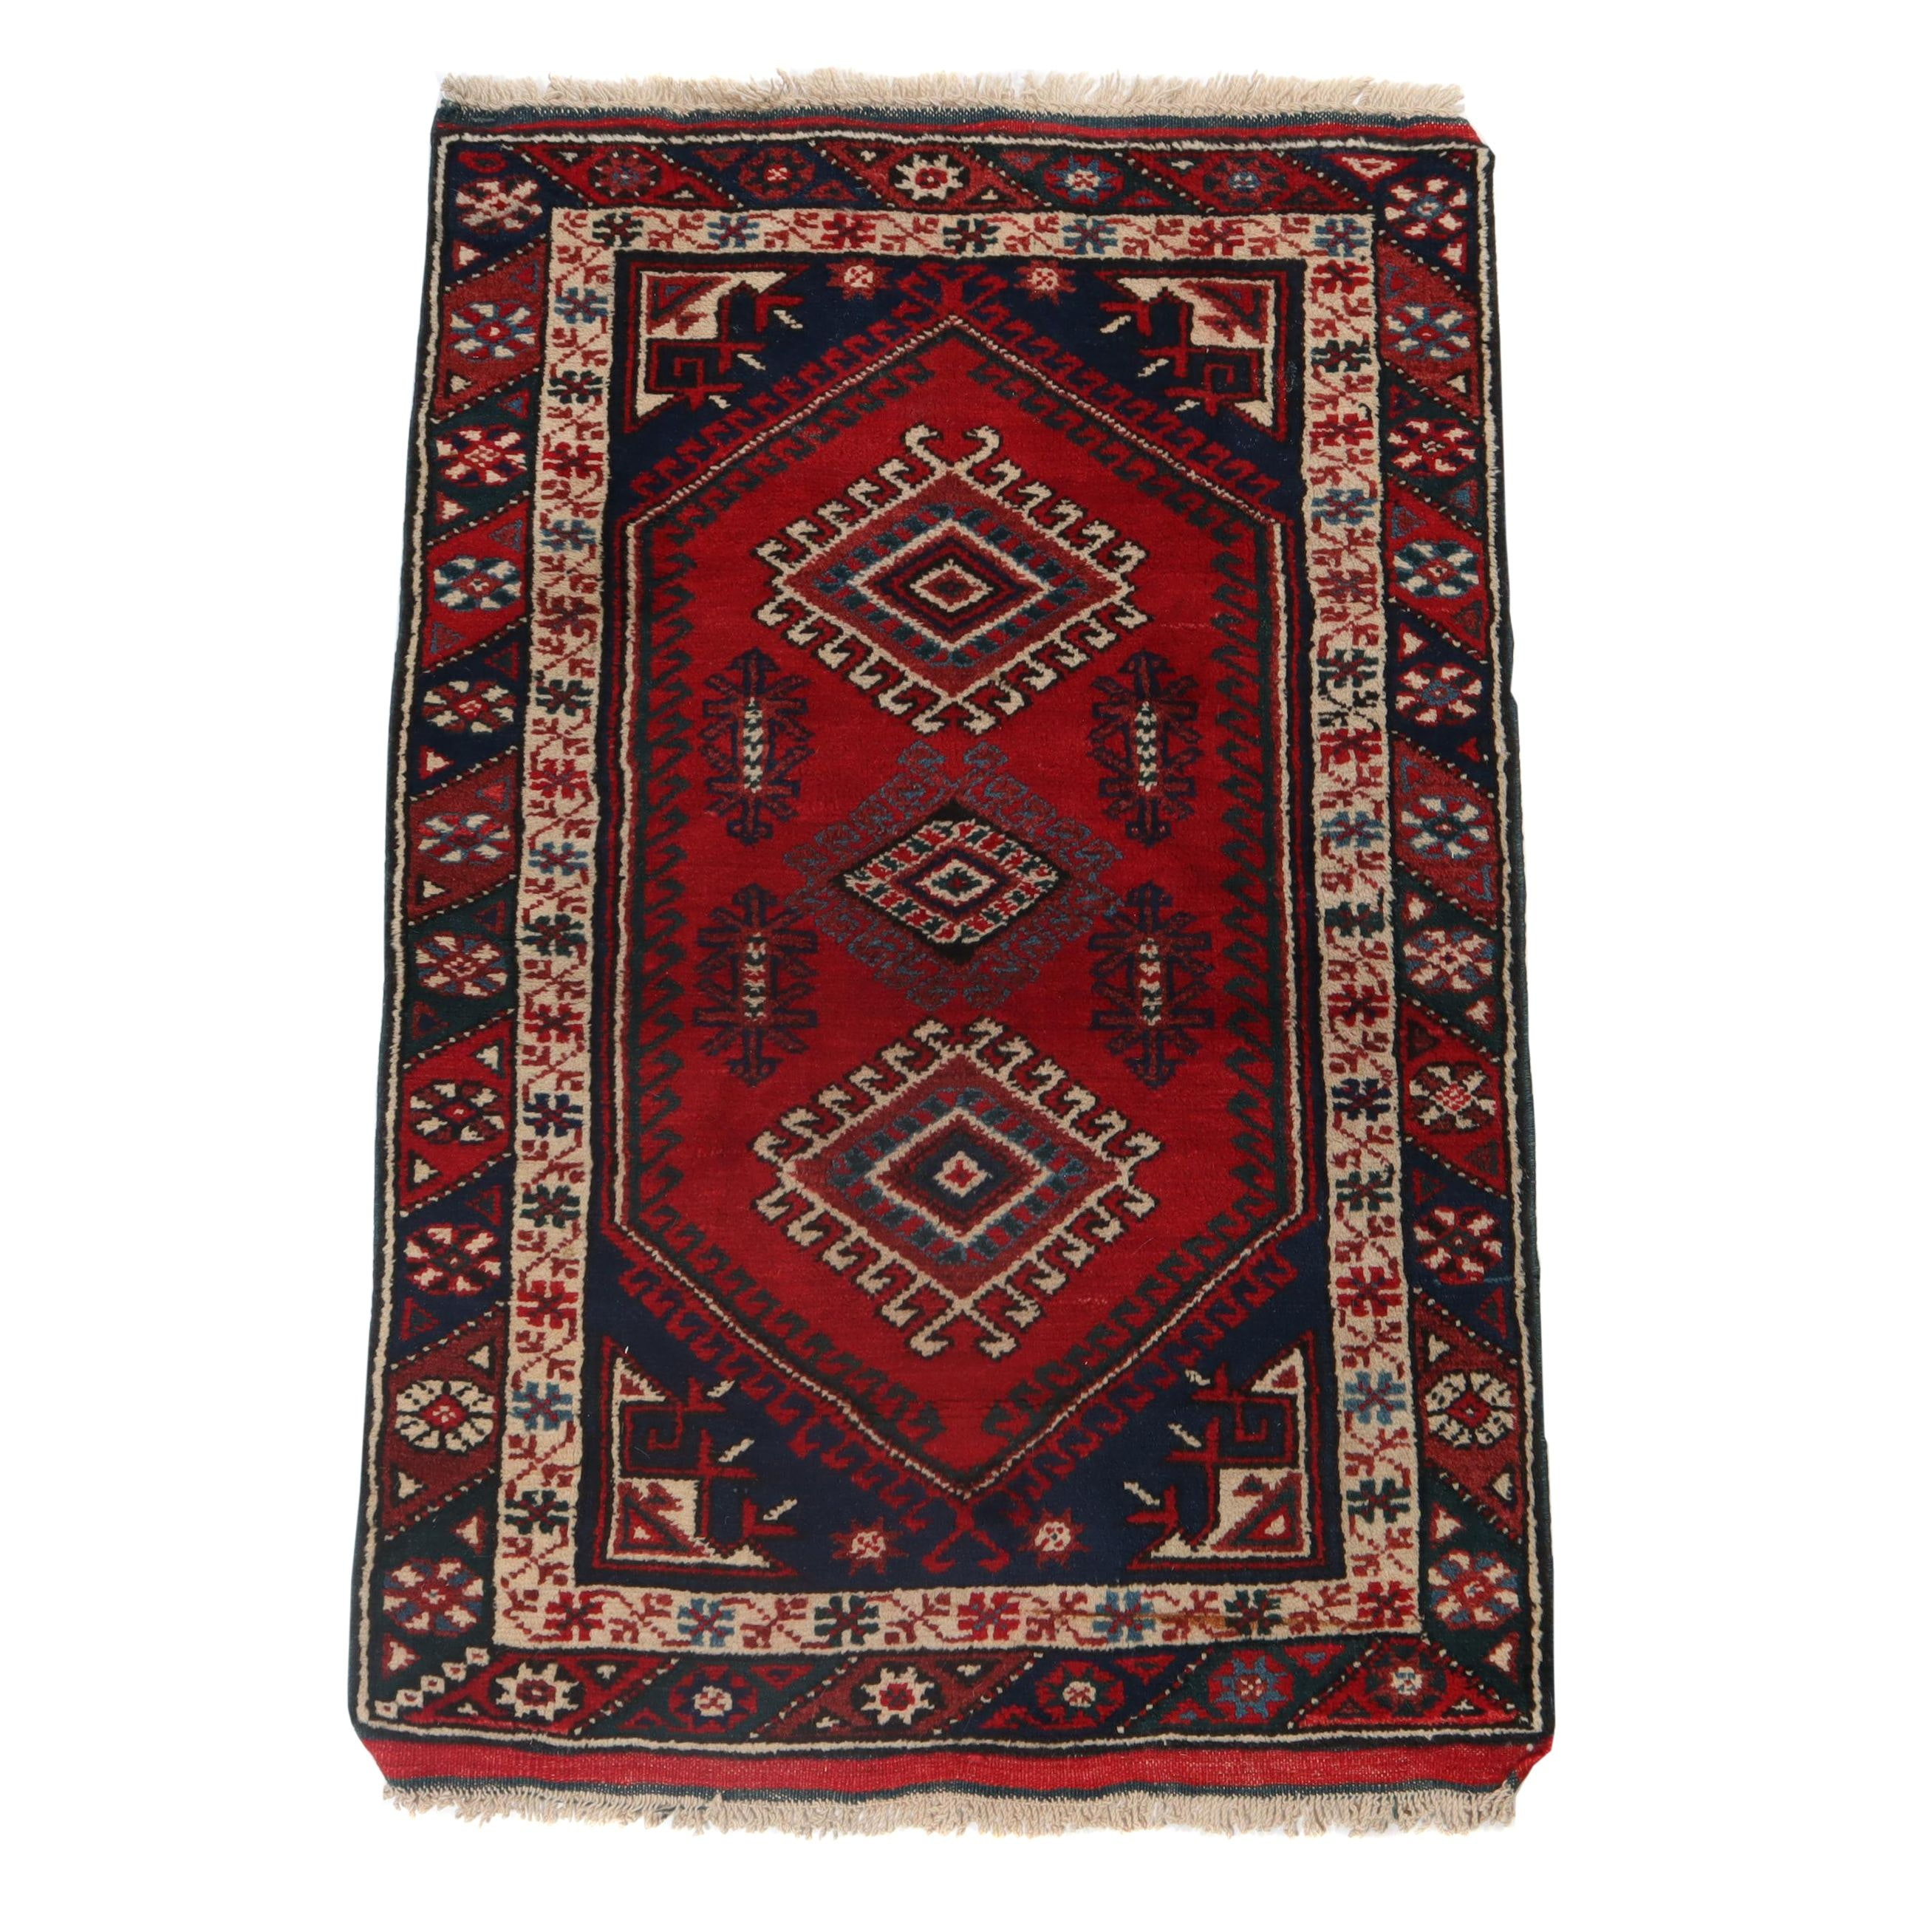 2'6 x 3'11 Hand-Knotted Turkish Caucasian Kazak Wool Rug